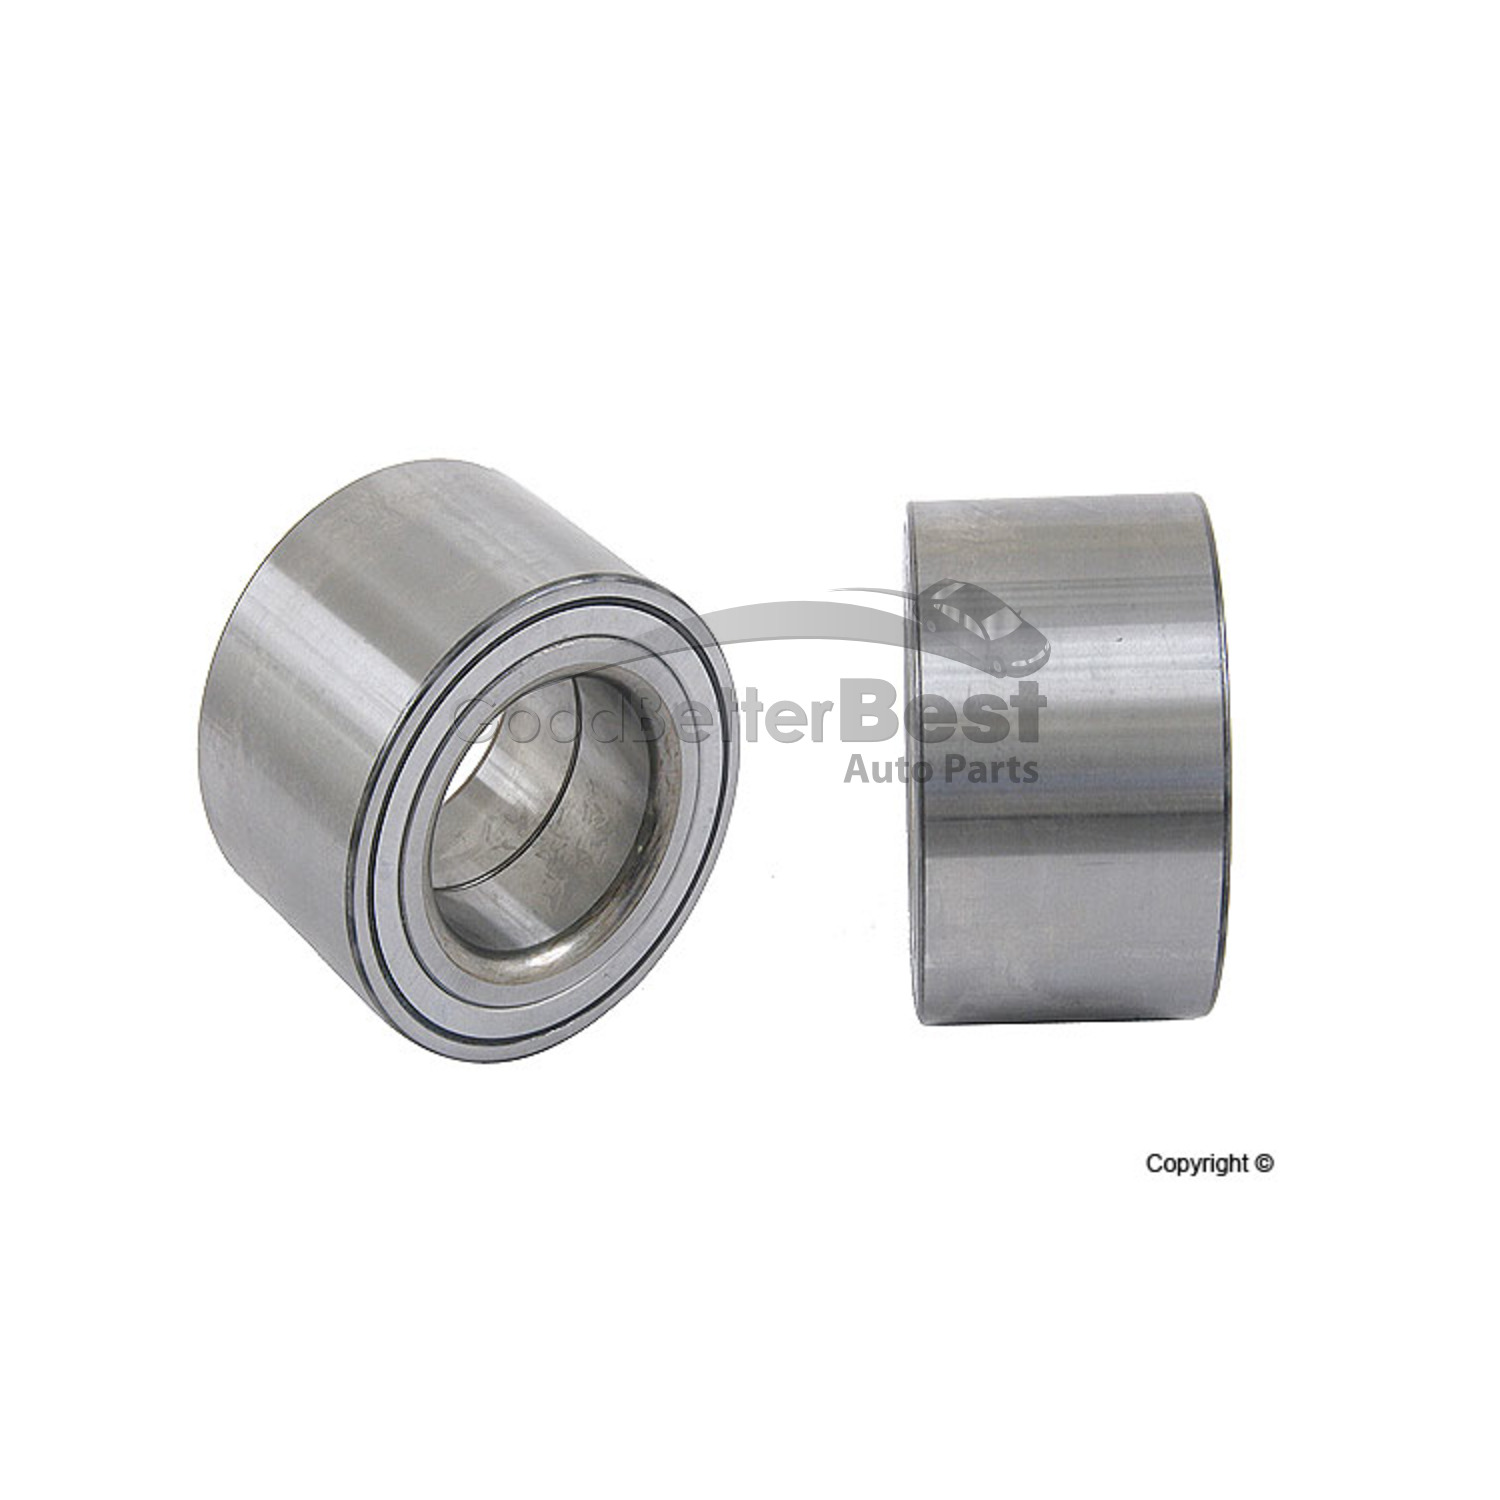 hight resolution of details about one new koyo wheel bearing rear fw51 f15126151 for mazda rx 8